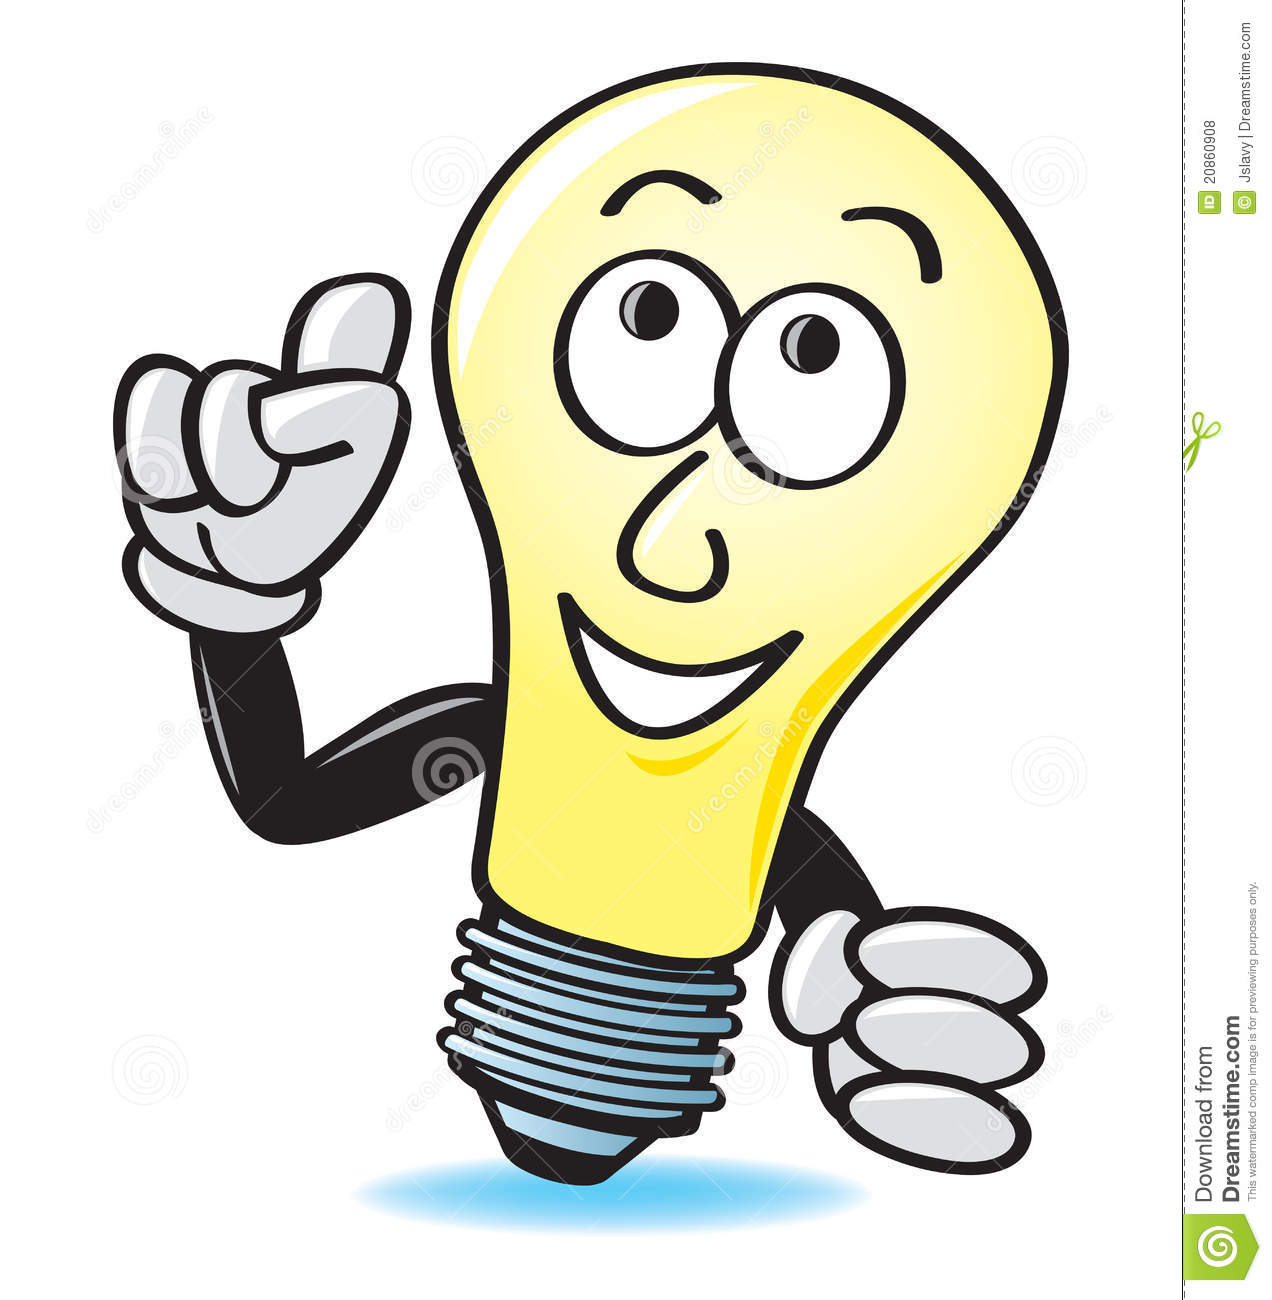 Cartoon Light Bulb http://www.dreamstime.com/royalty-free-stock-photos-cartoon-light-bulb-image20860908